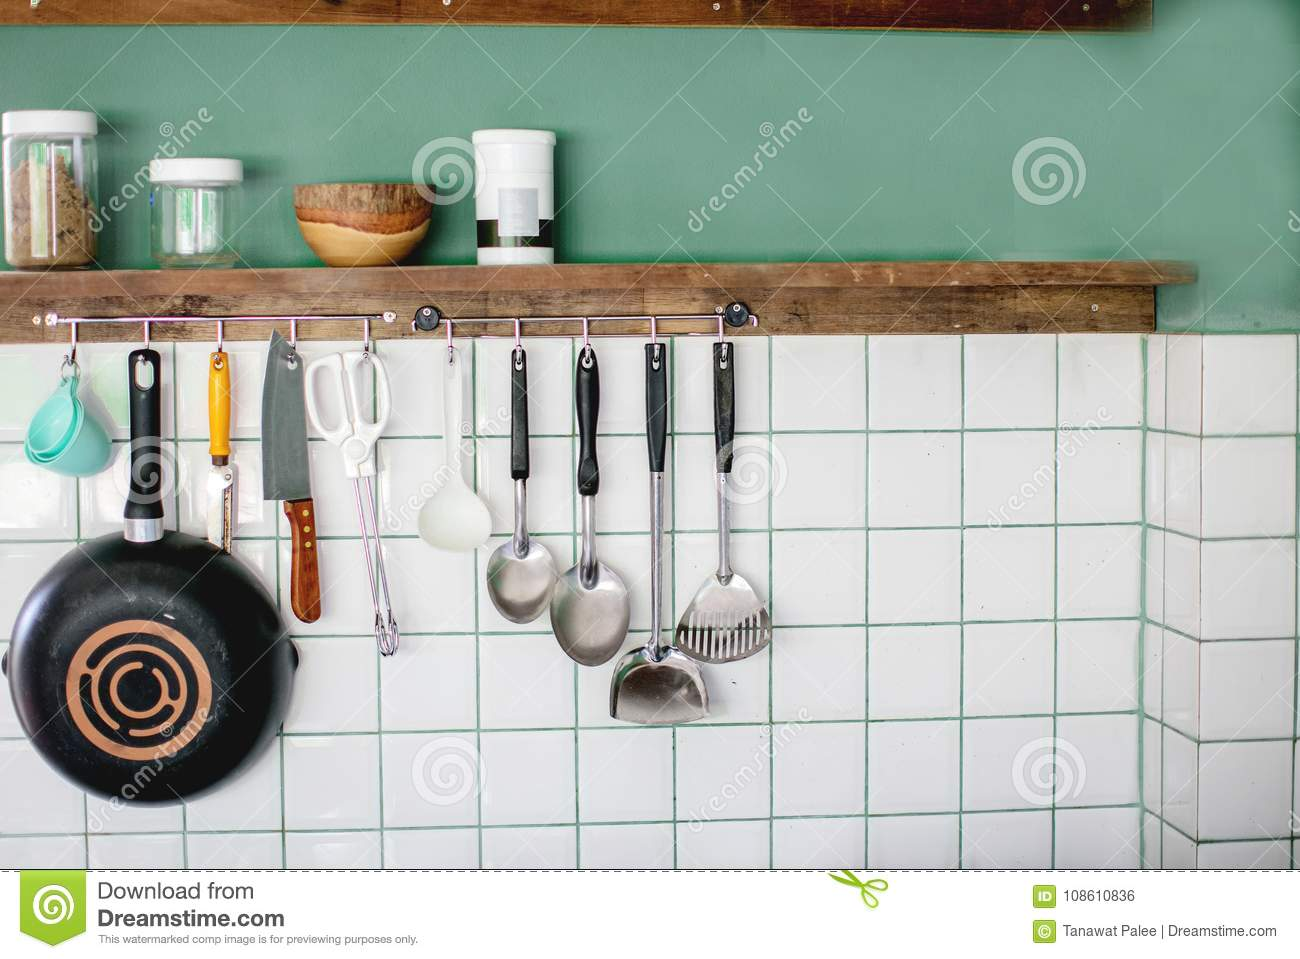 Kitchen Utensils On Work Top In Modern Kitchen Stock Photo ... on ideas to hang shoes, ideas to hang mirrors, ideas to hang jewelry, ideas to hang blankets, ideas to hang plates, ideas to hang hats, ideas to hang ornaments, ideas to hang baskets, ideas to hang pots and pans, ideas to hang clothes,